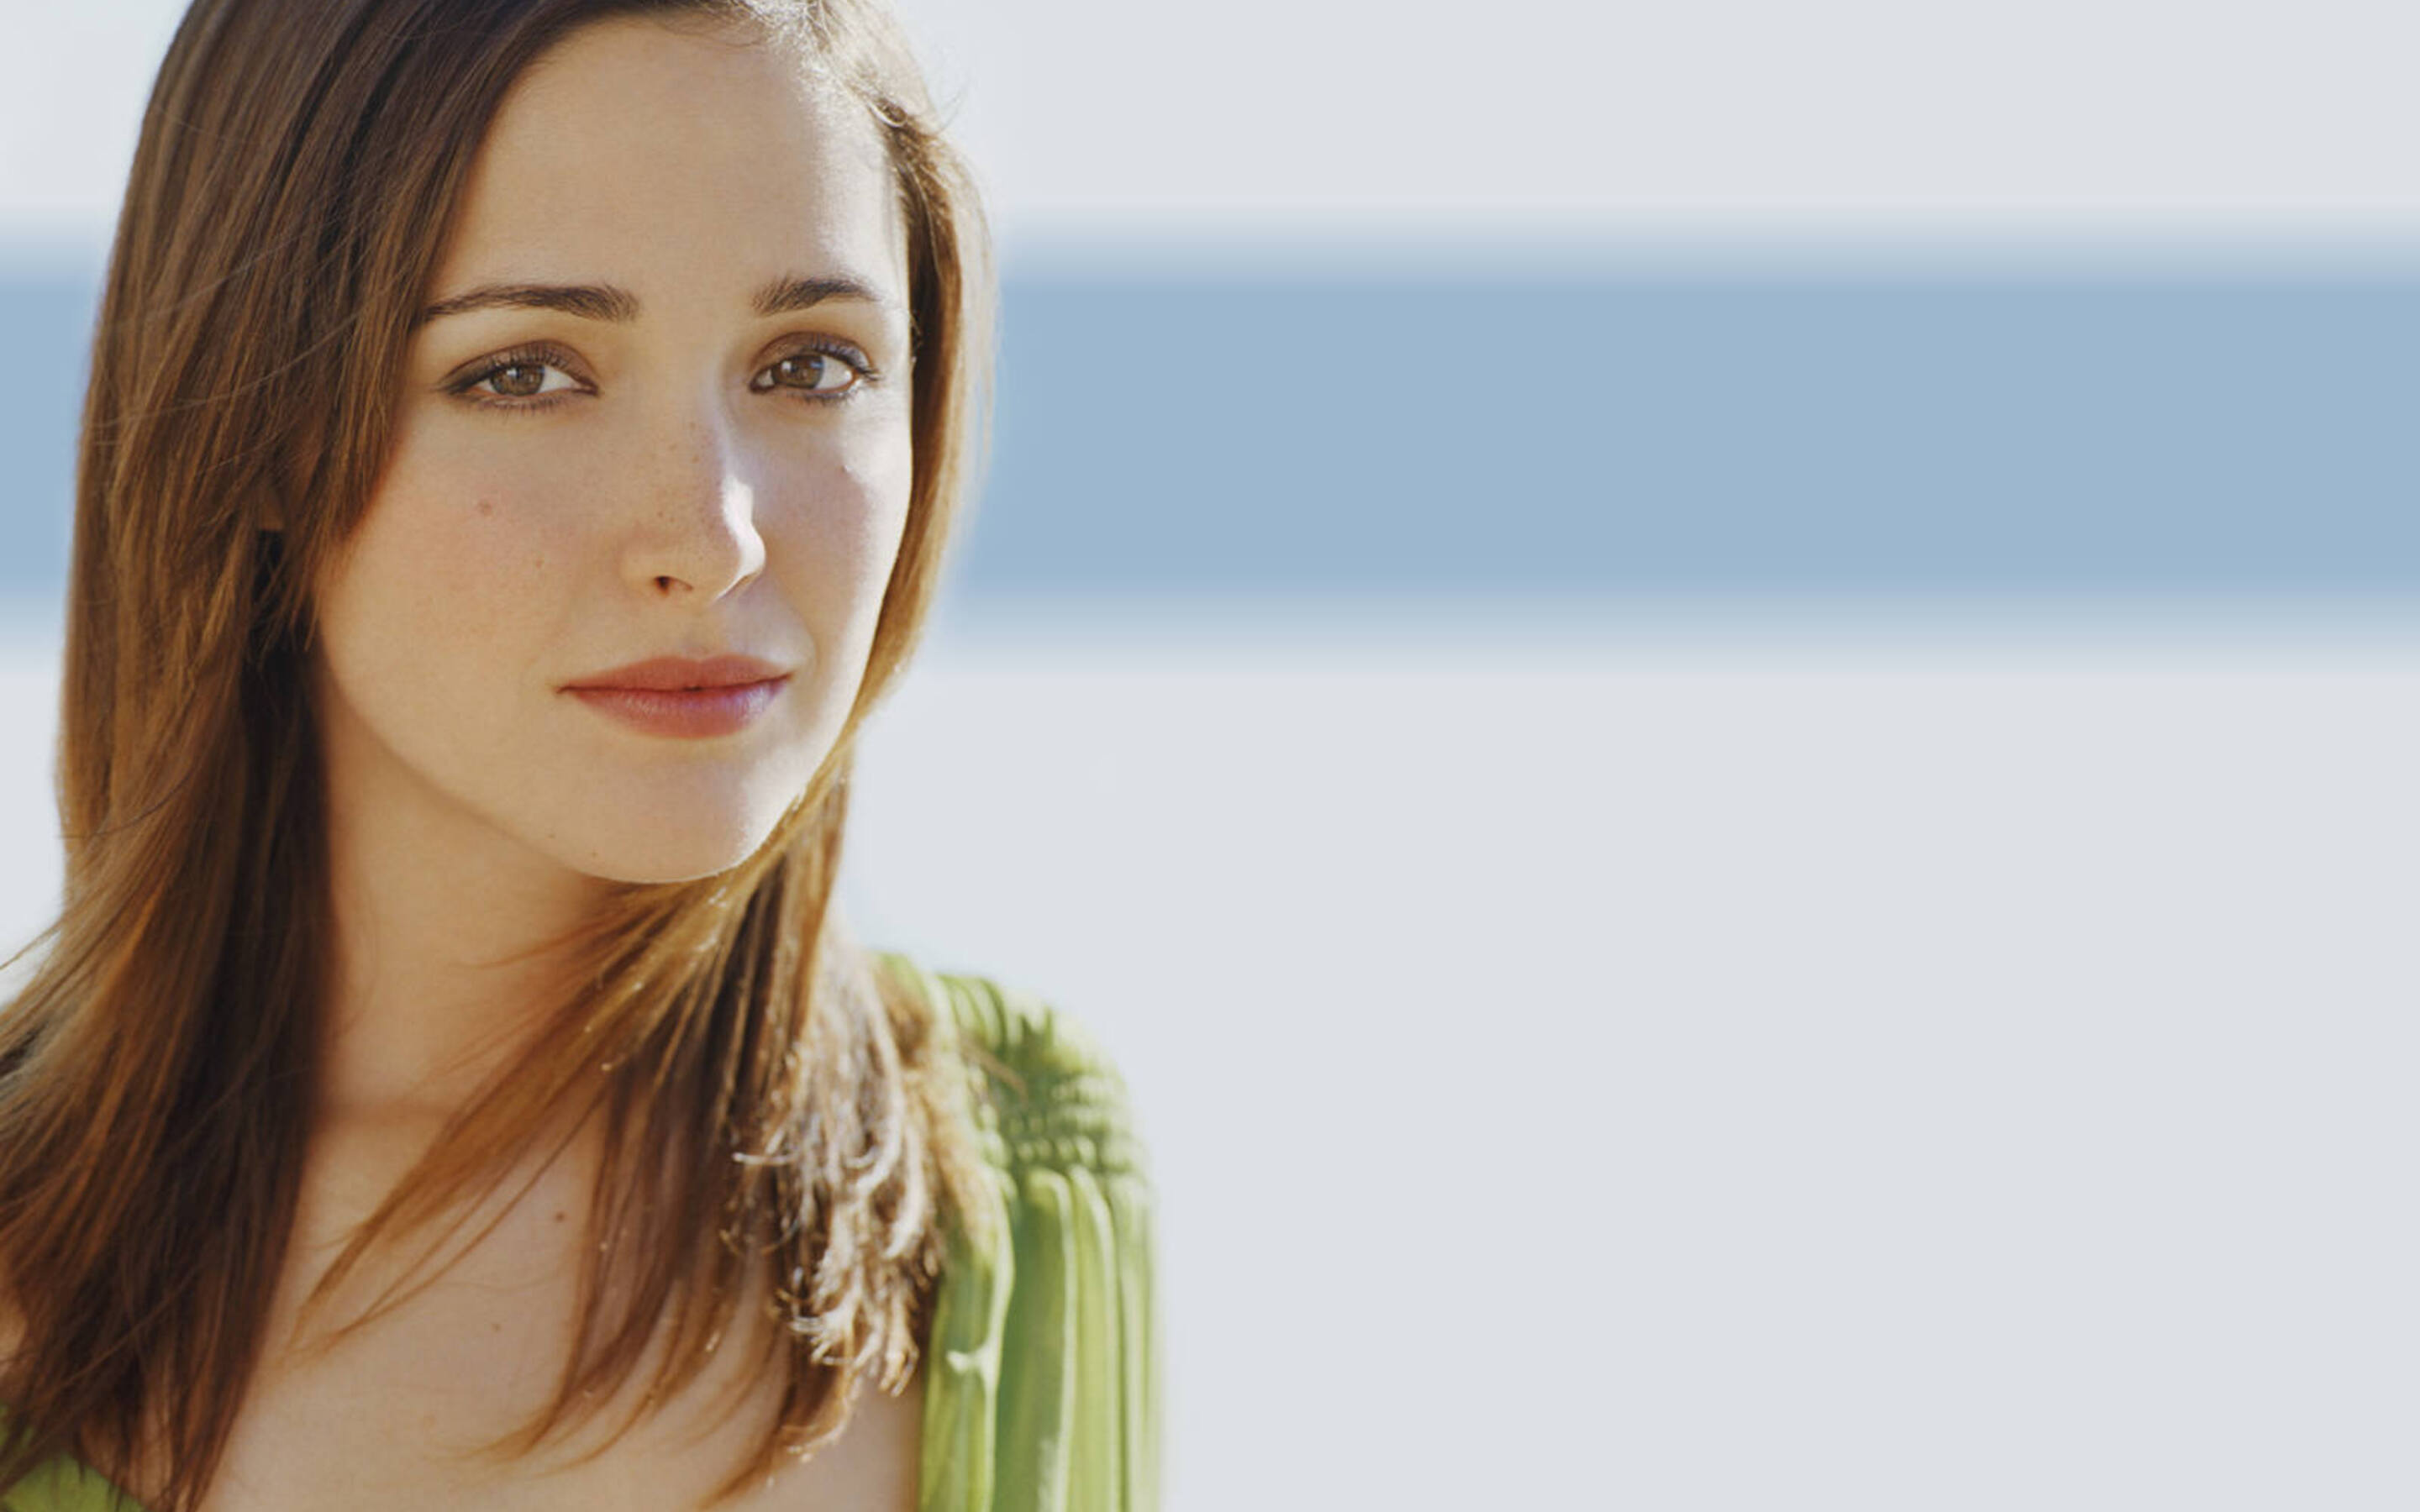 rose-byrne-simple-4k.jpg